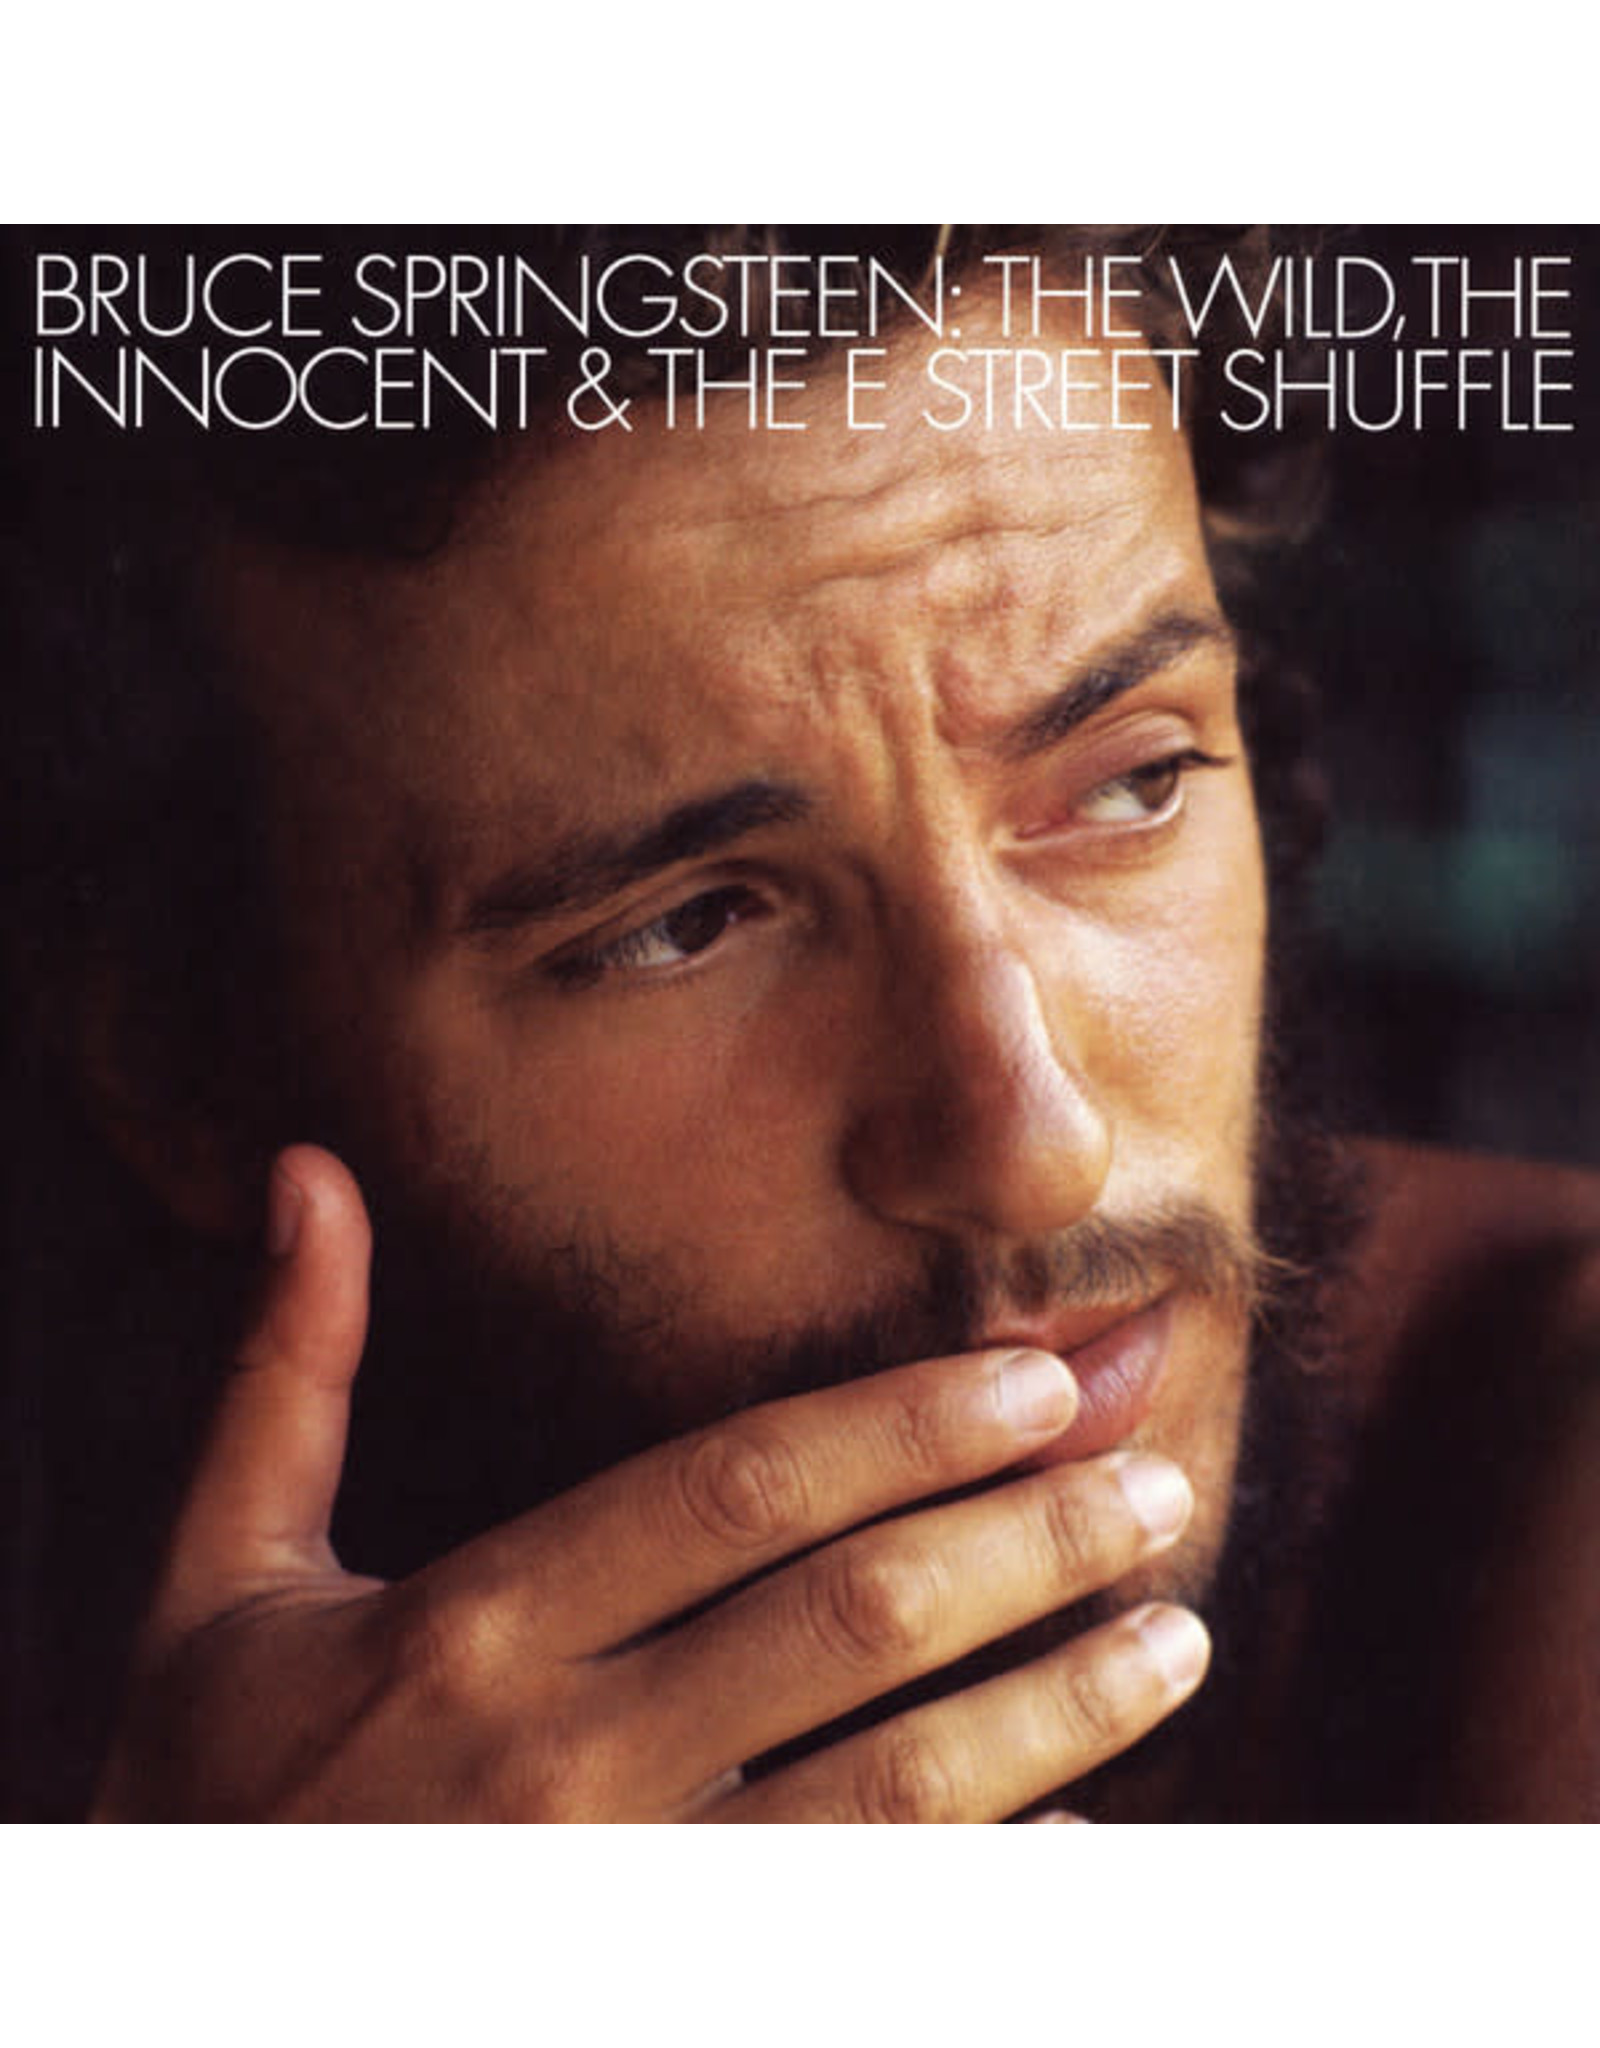 Springsteen, Bruce - The Wild, Innocent & The E Street Shuffle LP